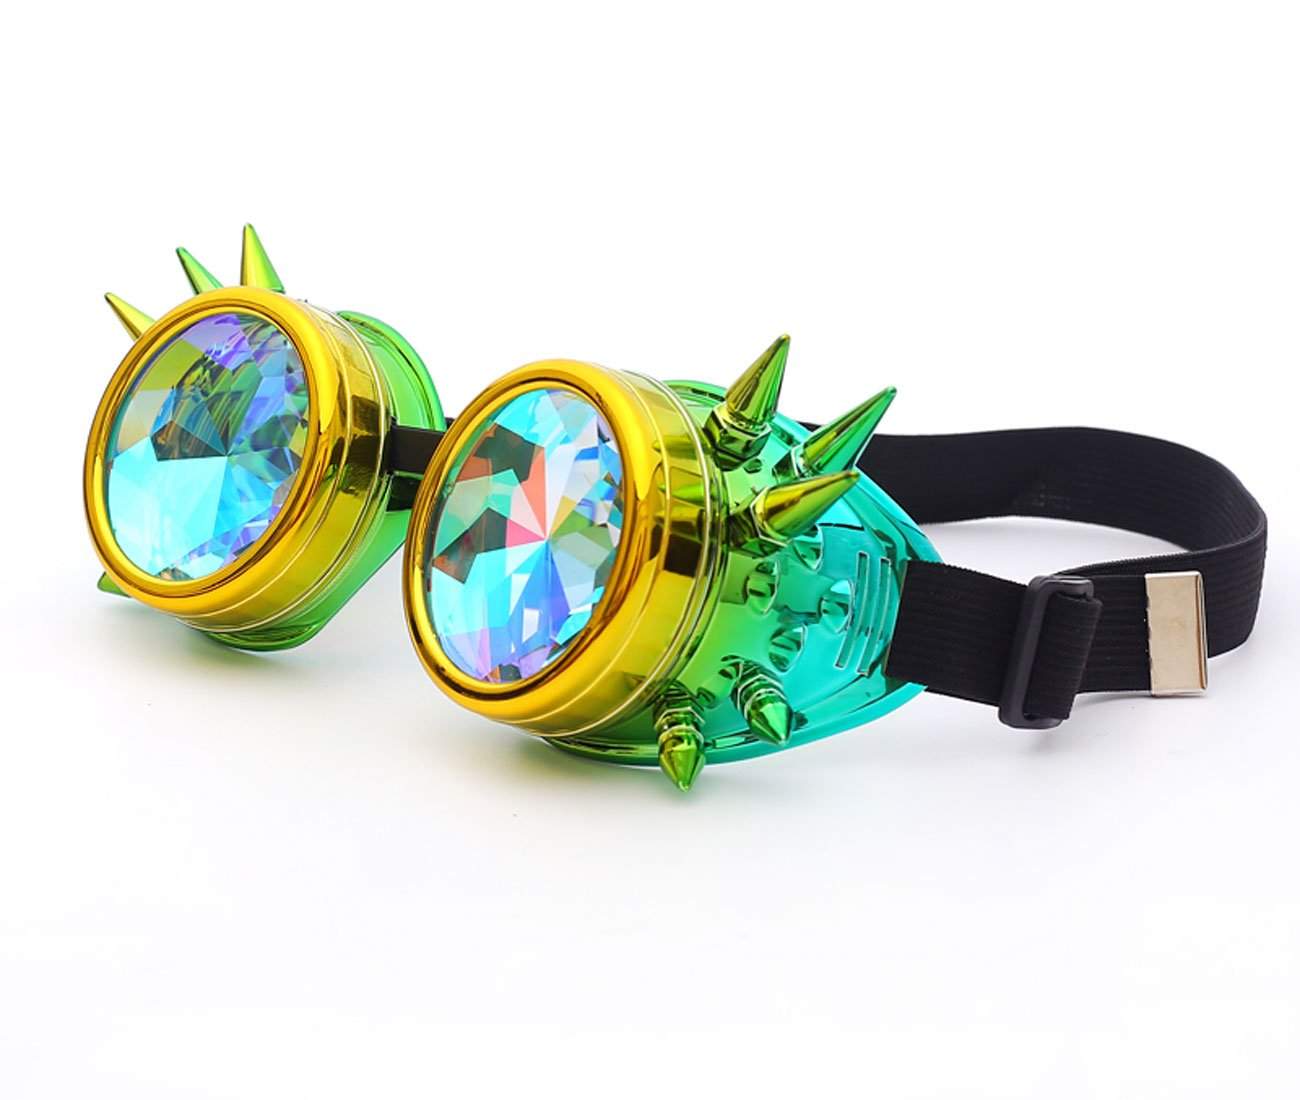 c7c81e1e72f7 Focussexy Spiked Goggles Kaleidoscope Steampunk Rave with Crystal Glass Lens